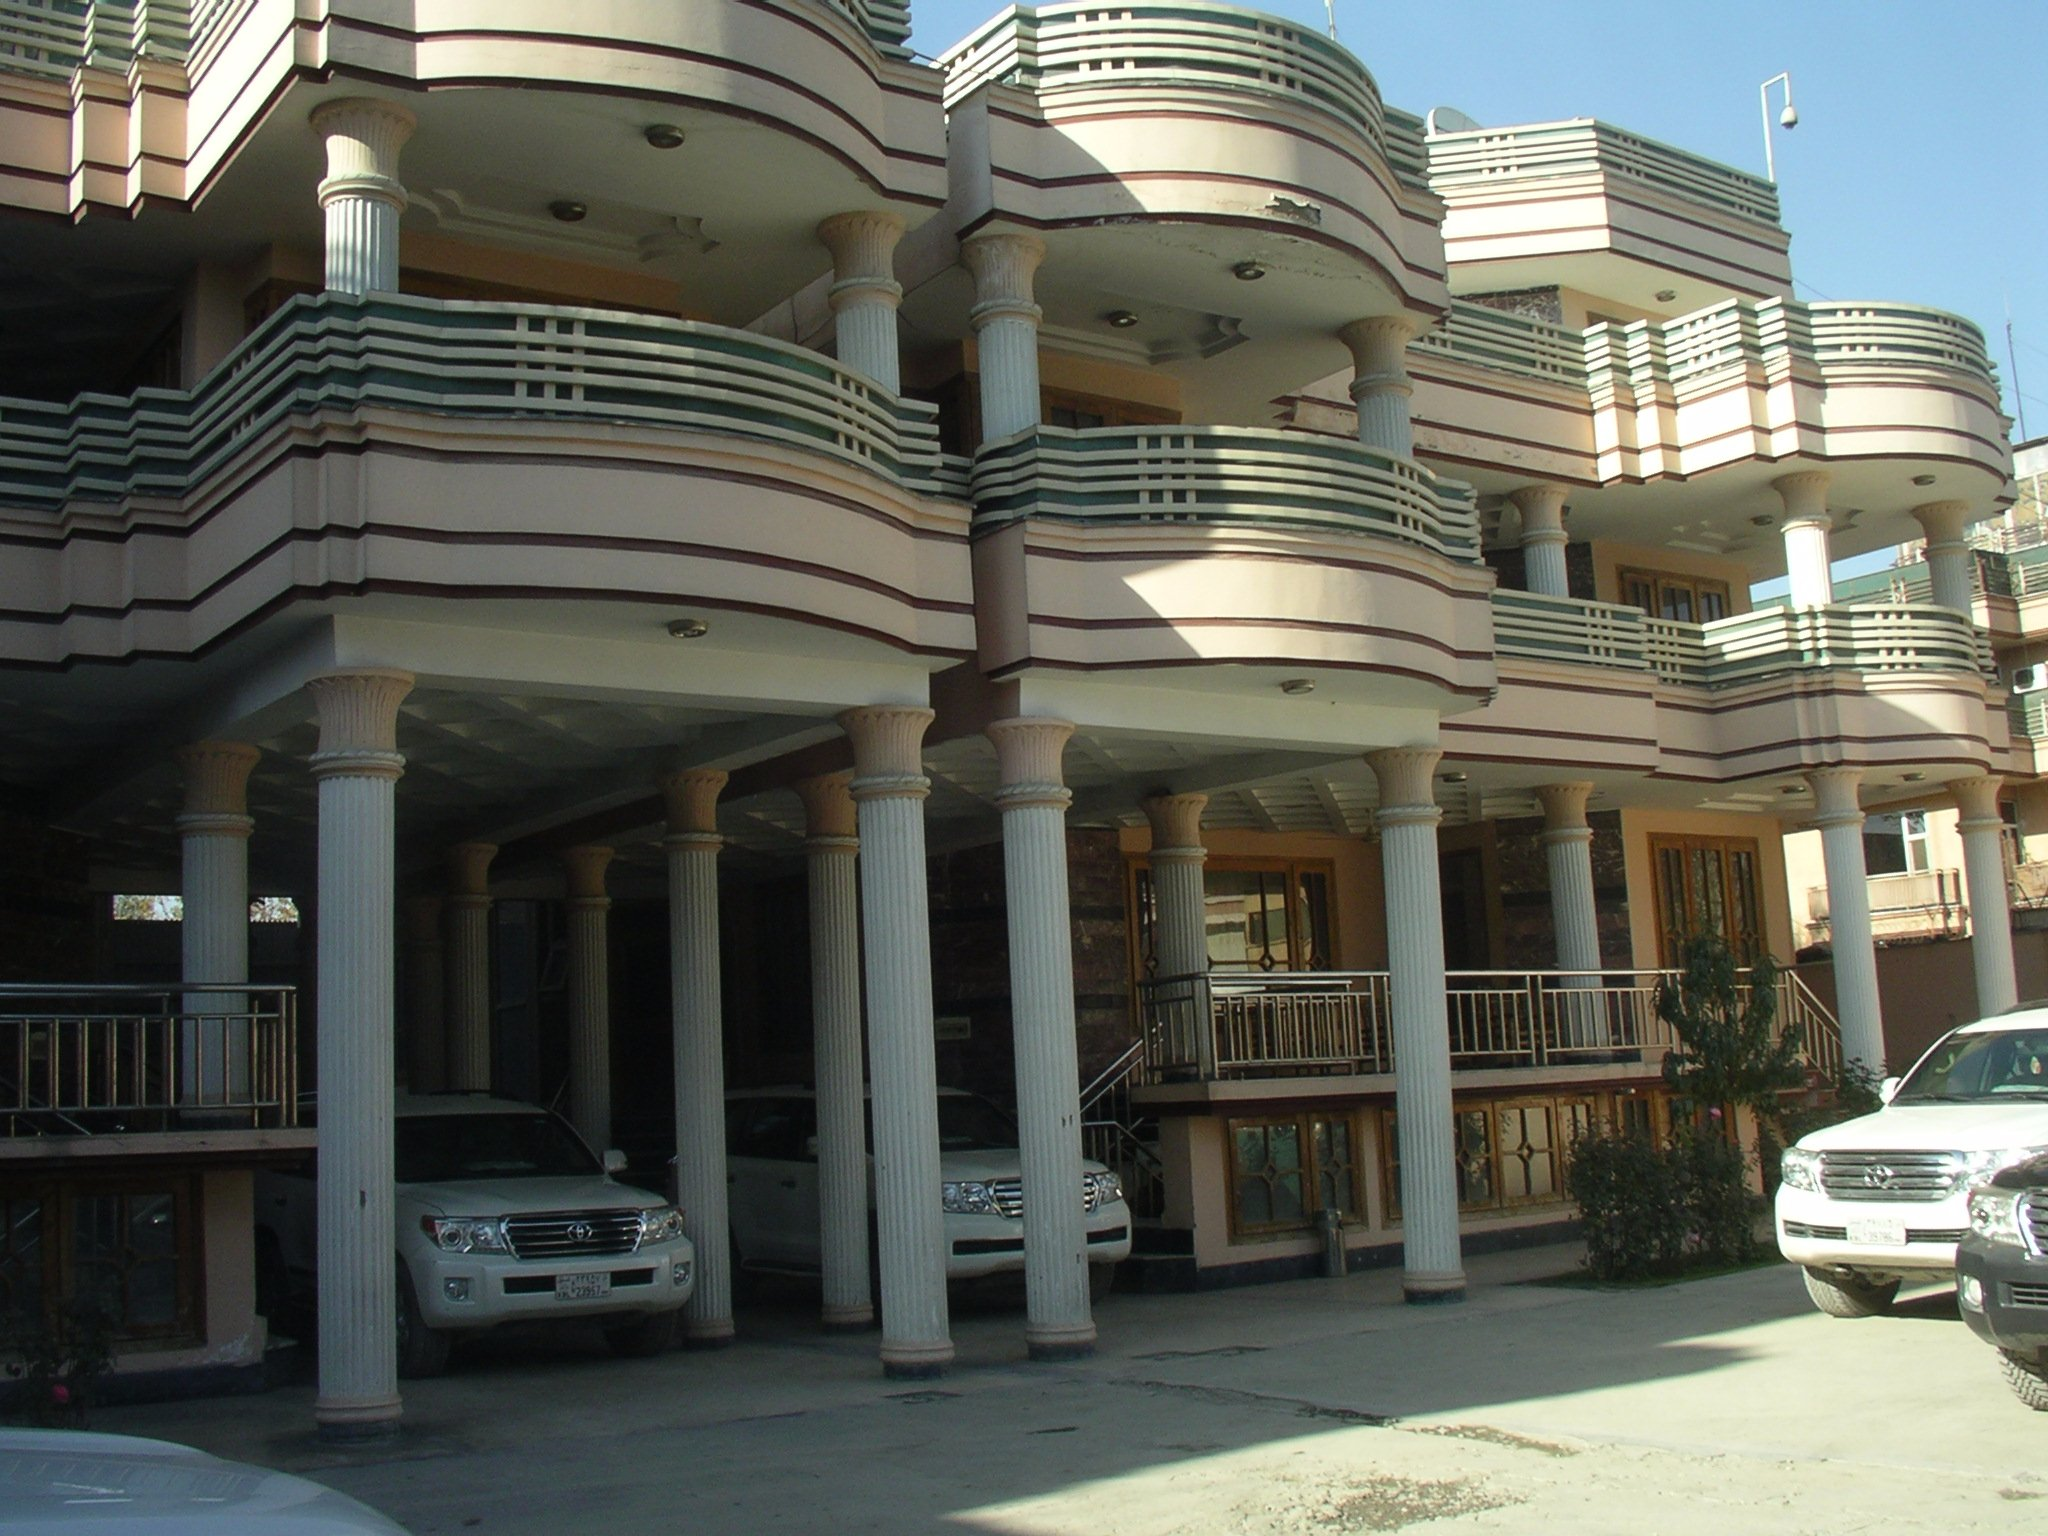 Private Afghanistan Military Villas